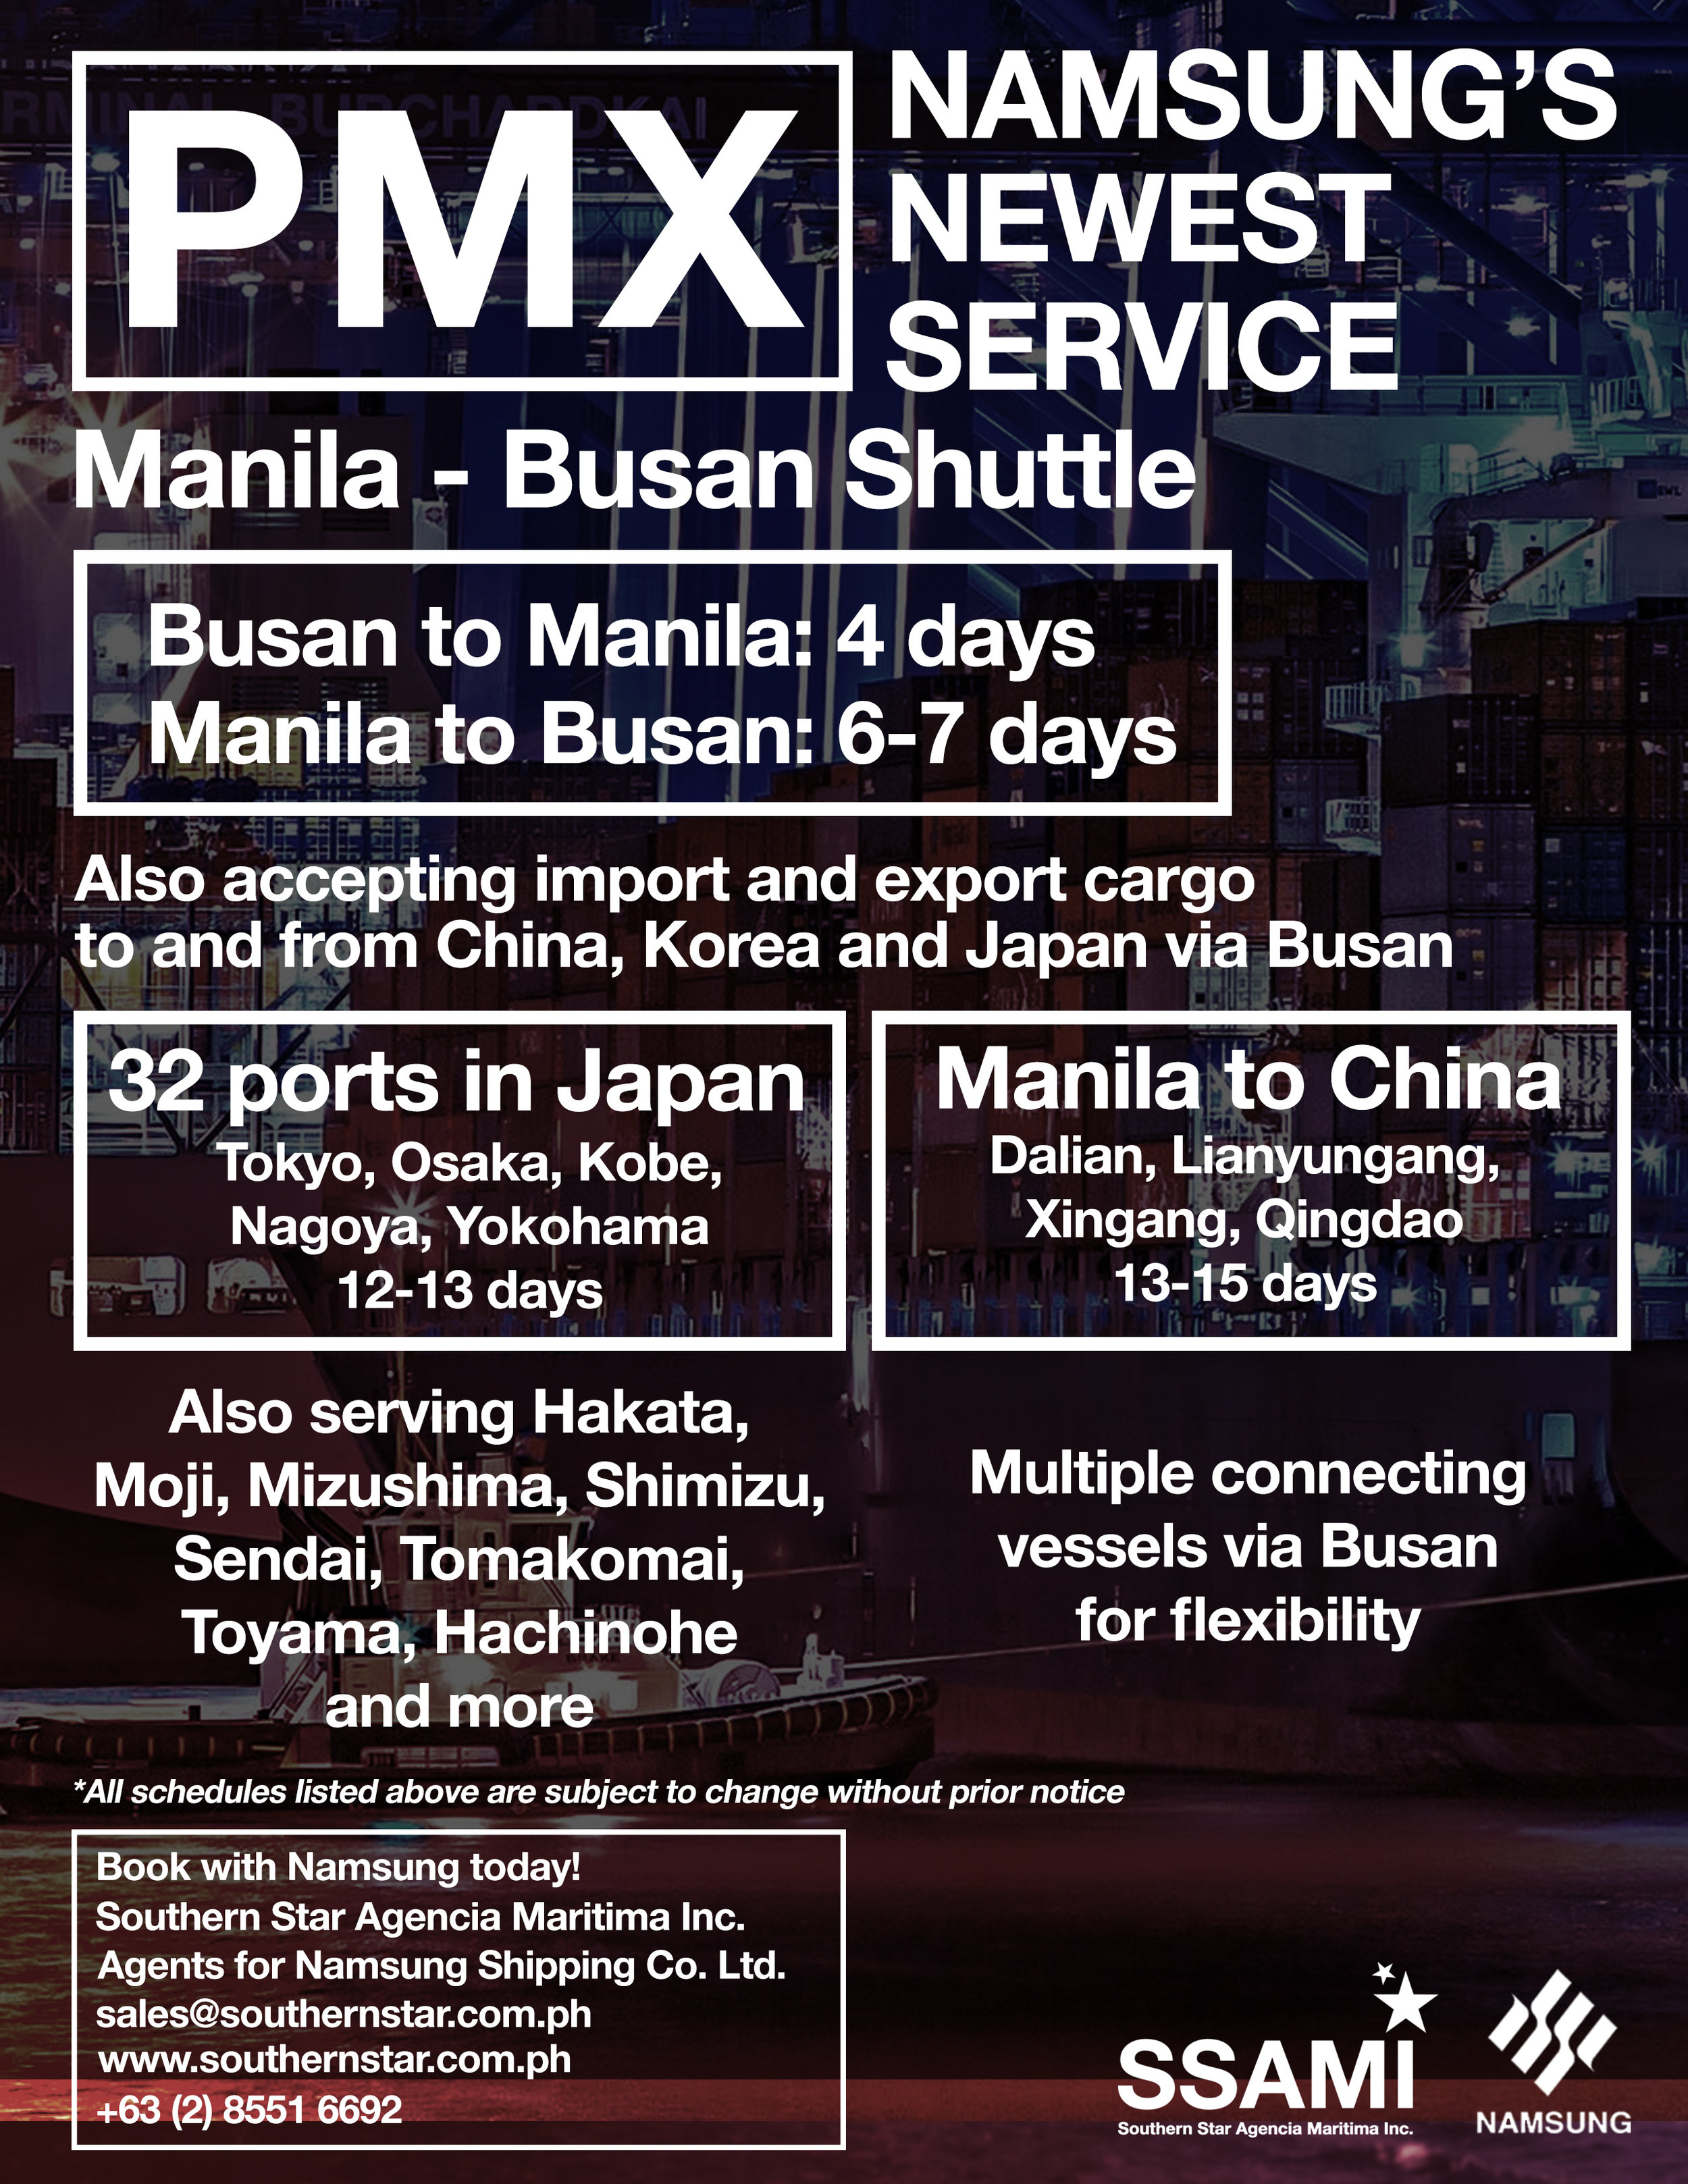 Announcing: PMX Service - Namsung's newest Manila - Busan shuttle service.Inquire and book today.